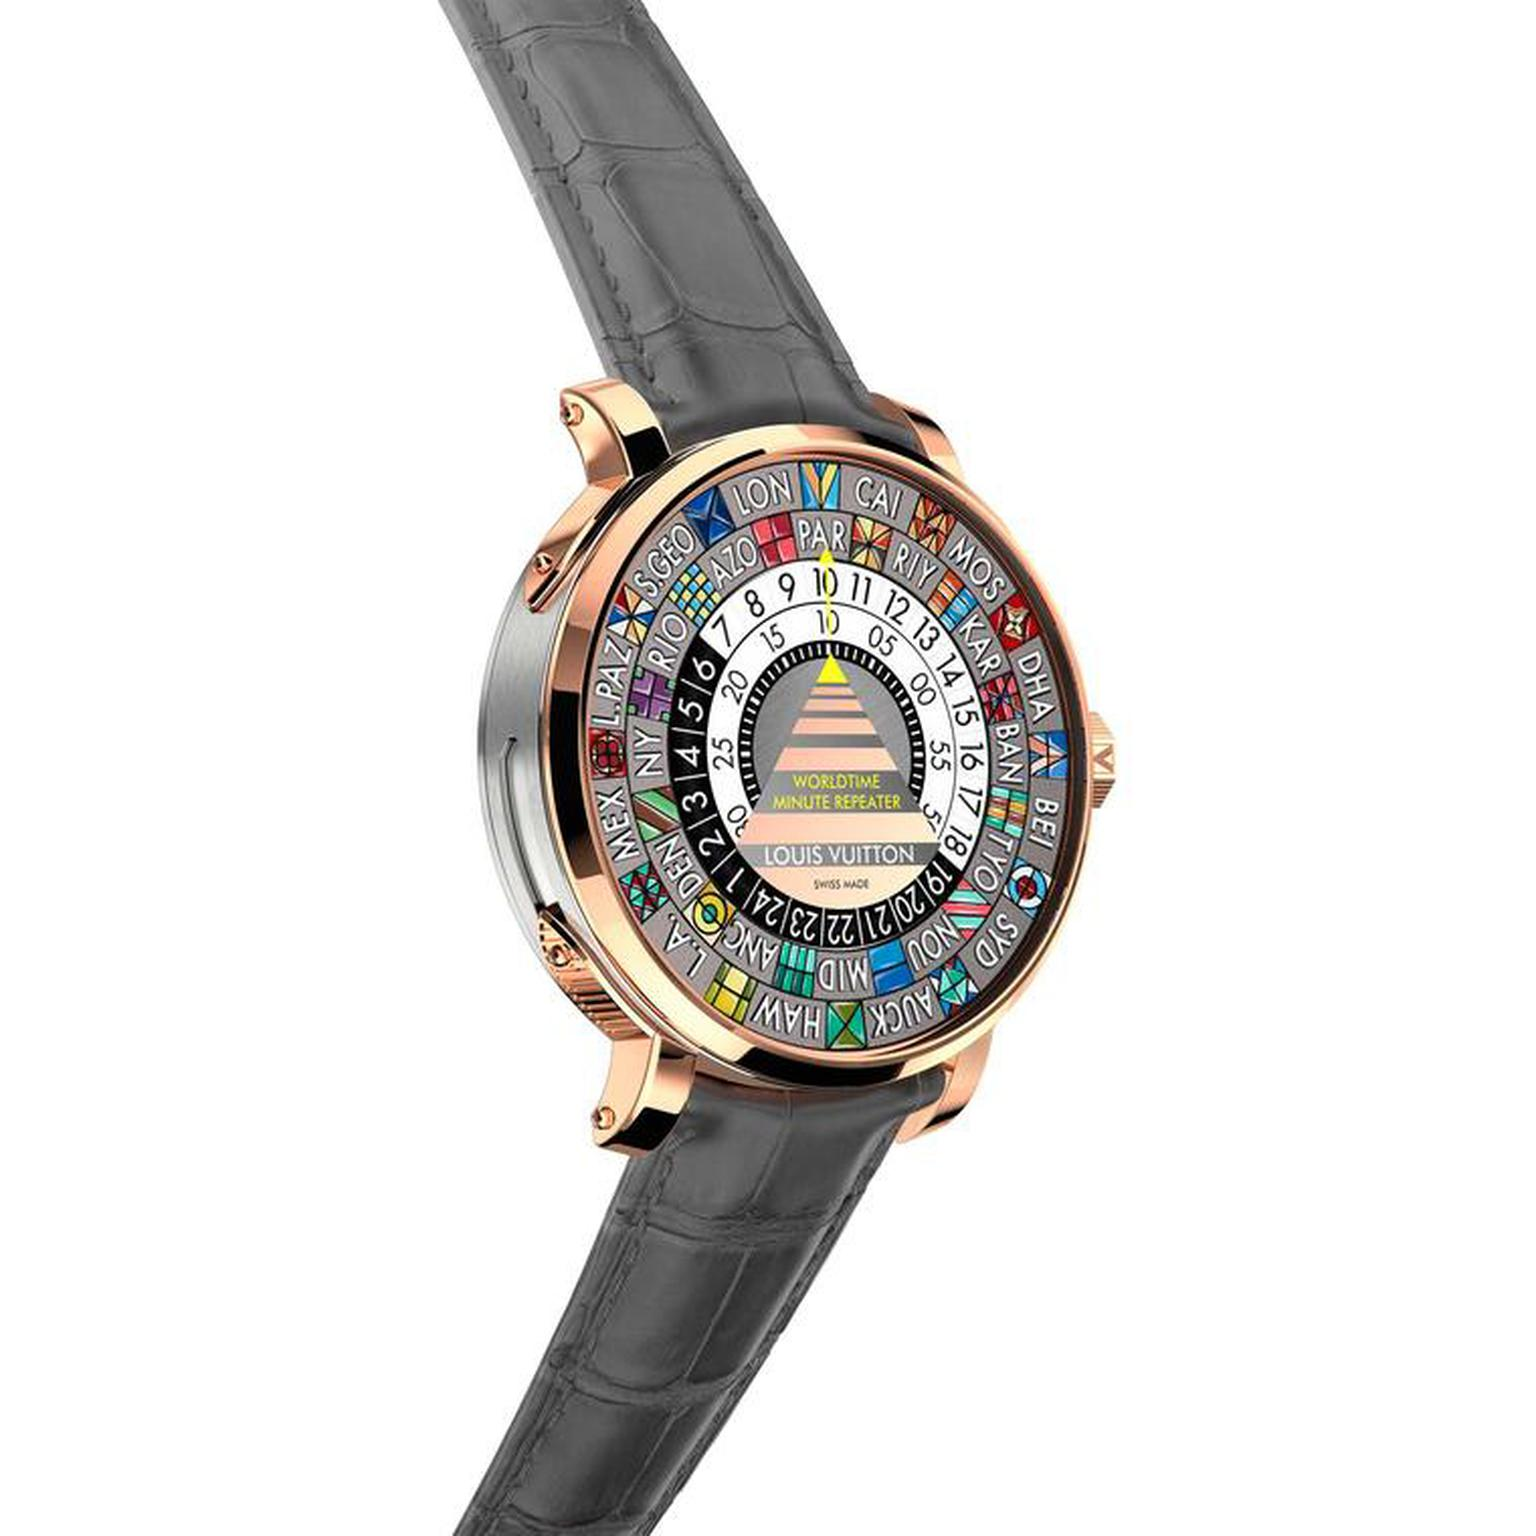 Louis Vuitton Escale Time Zone watch